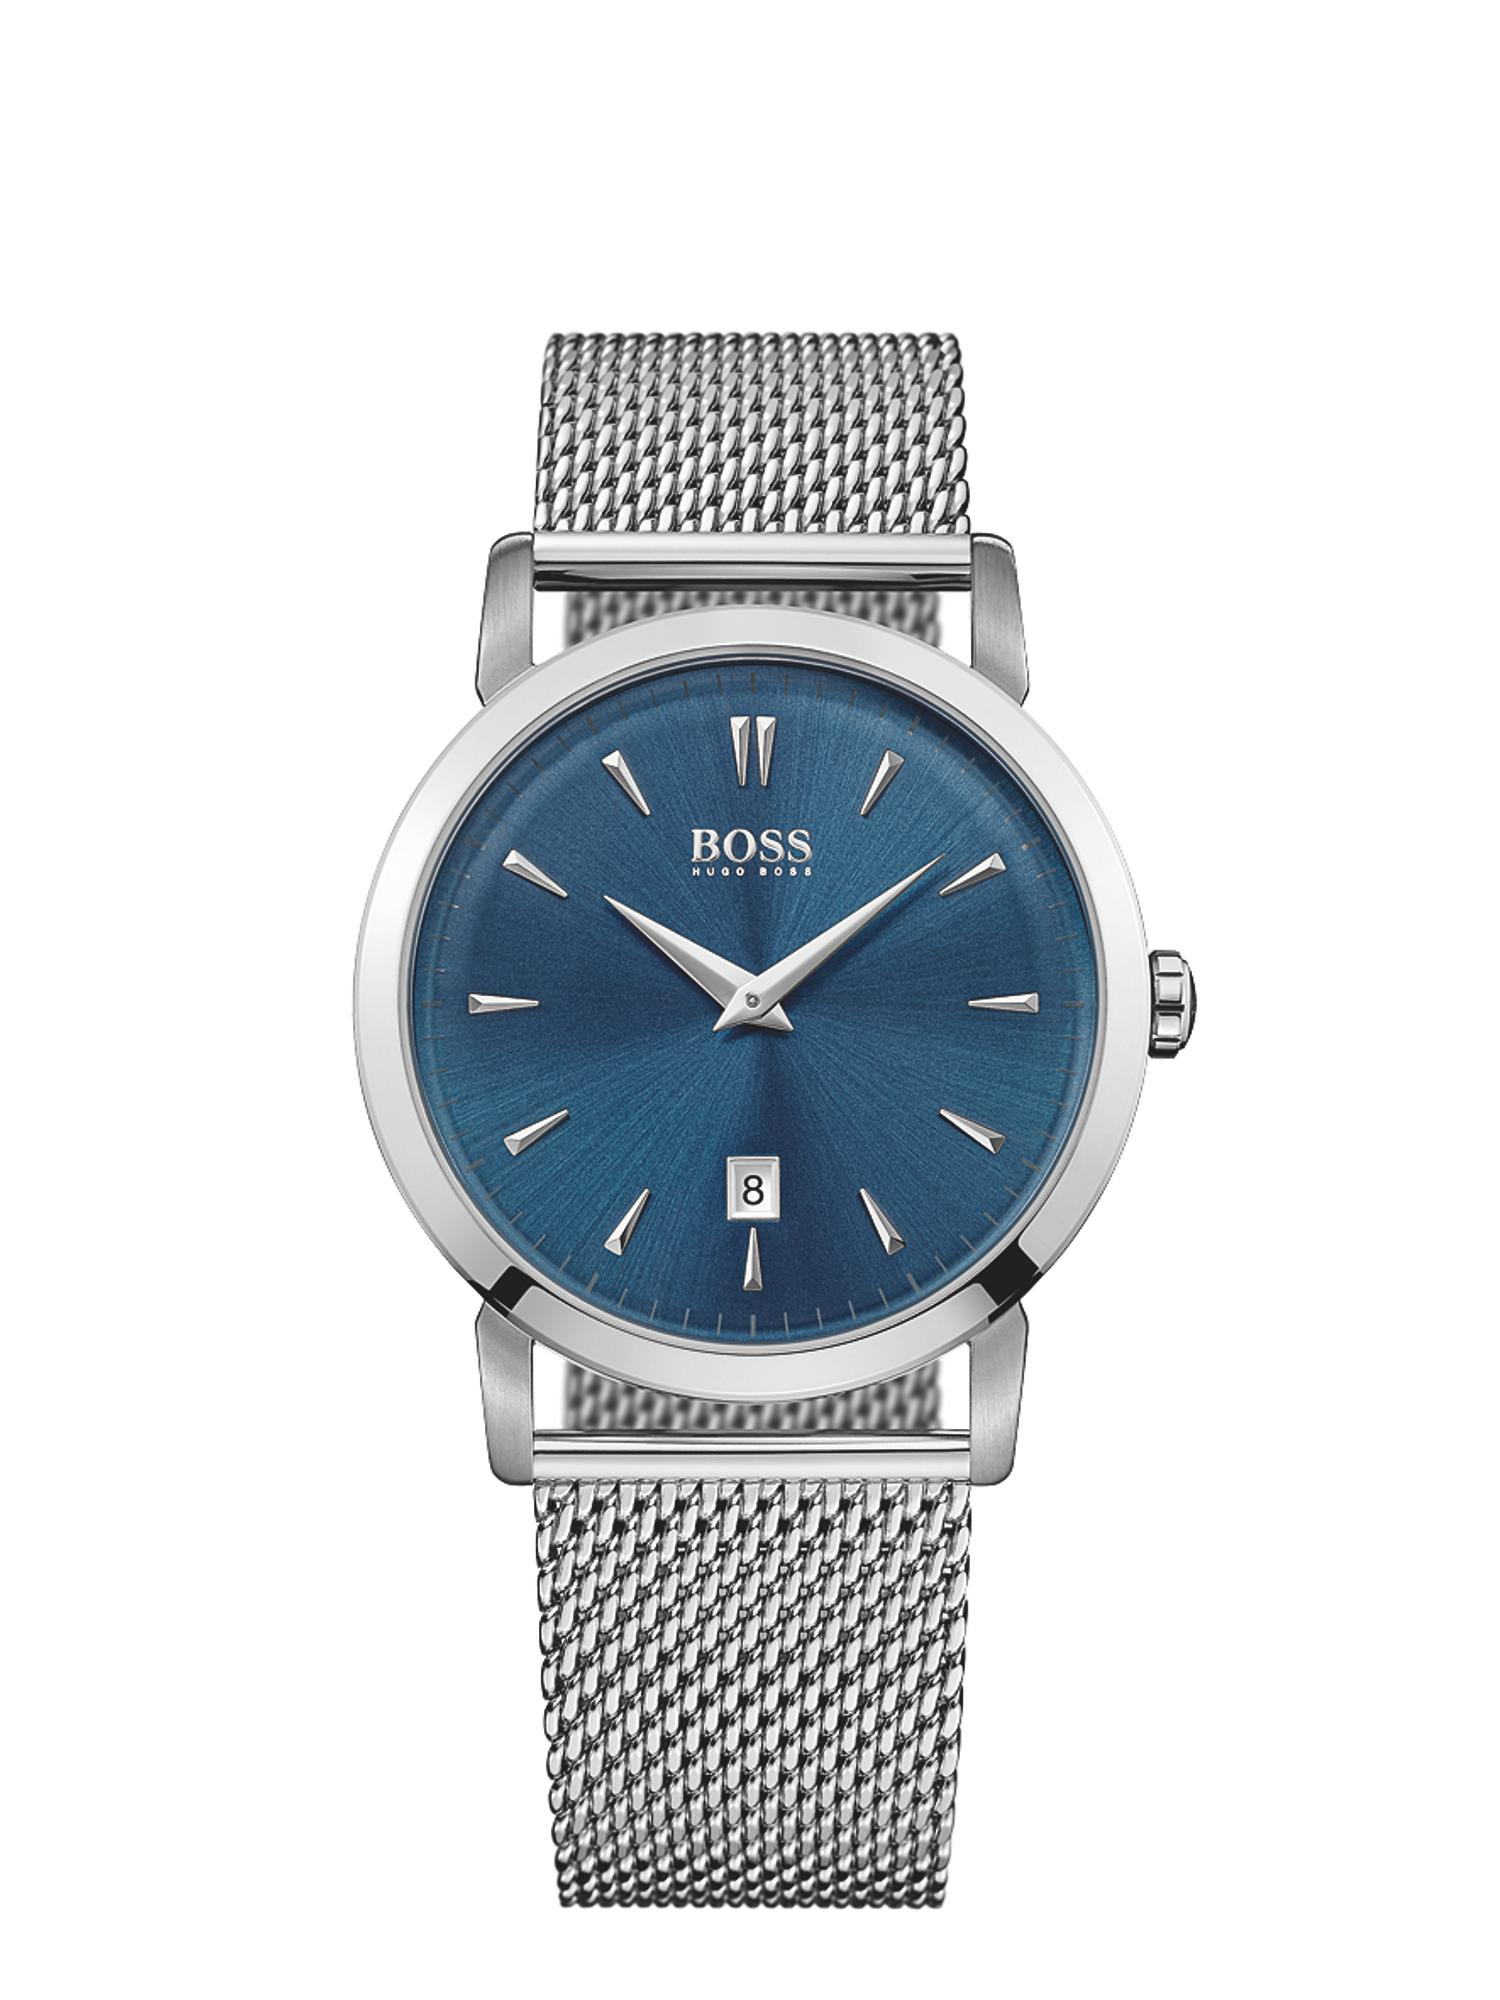 hugo boss watches at house of fraser hugo boss 21513273 mens bracelet watch